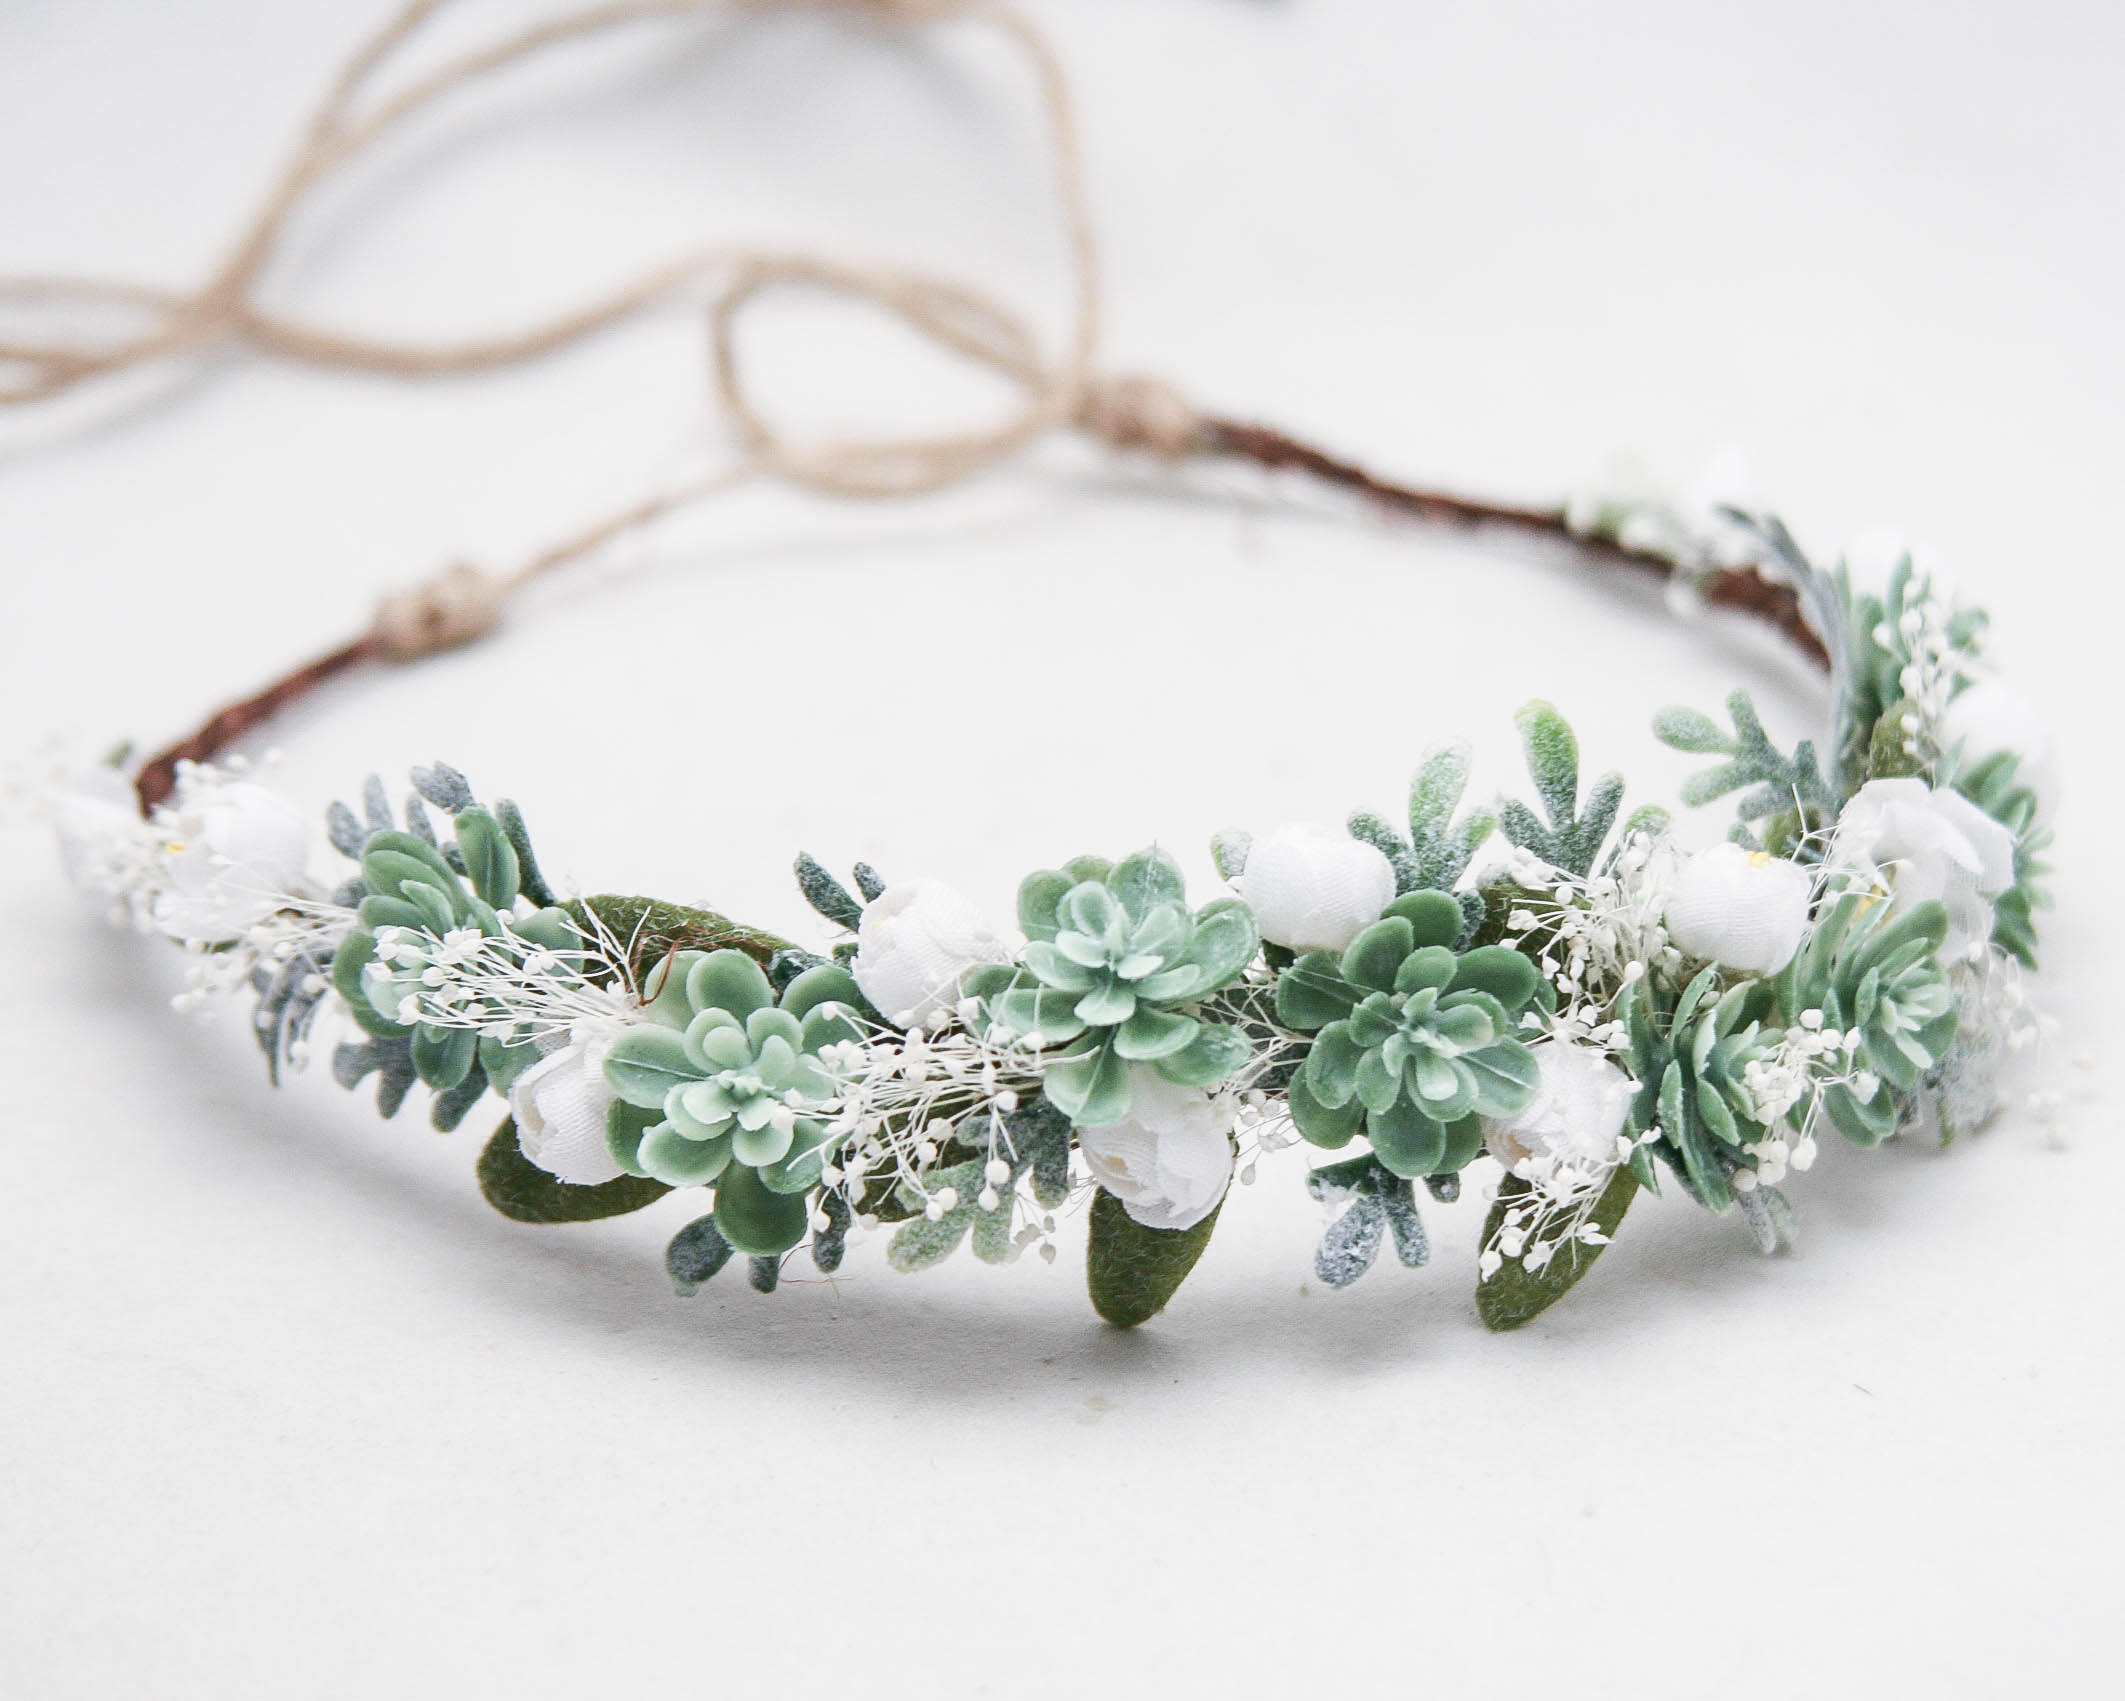 Floral bridal headpiece Hair comb with green leaves and white small flowers for bride Baby/'s breath hair pins Greenery wedding hair piece